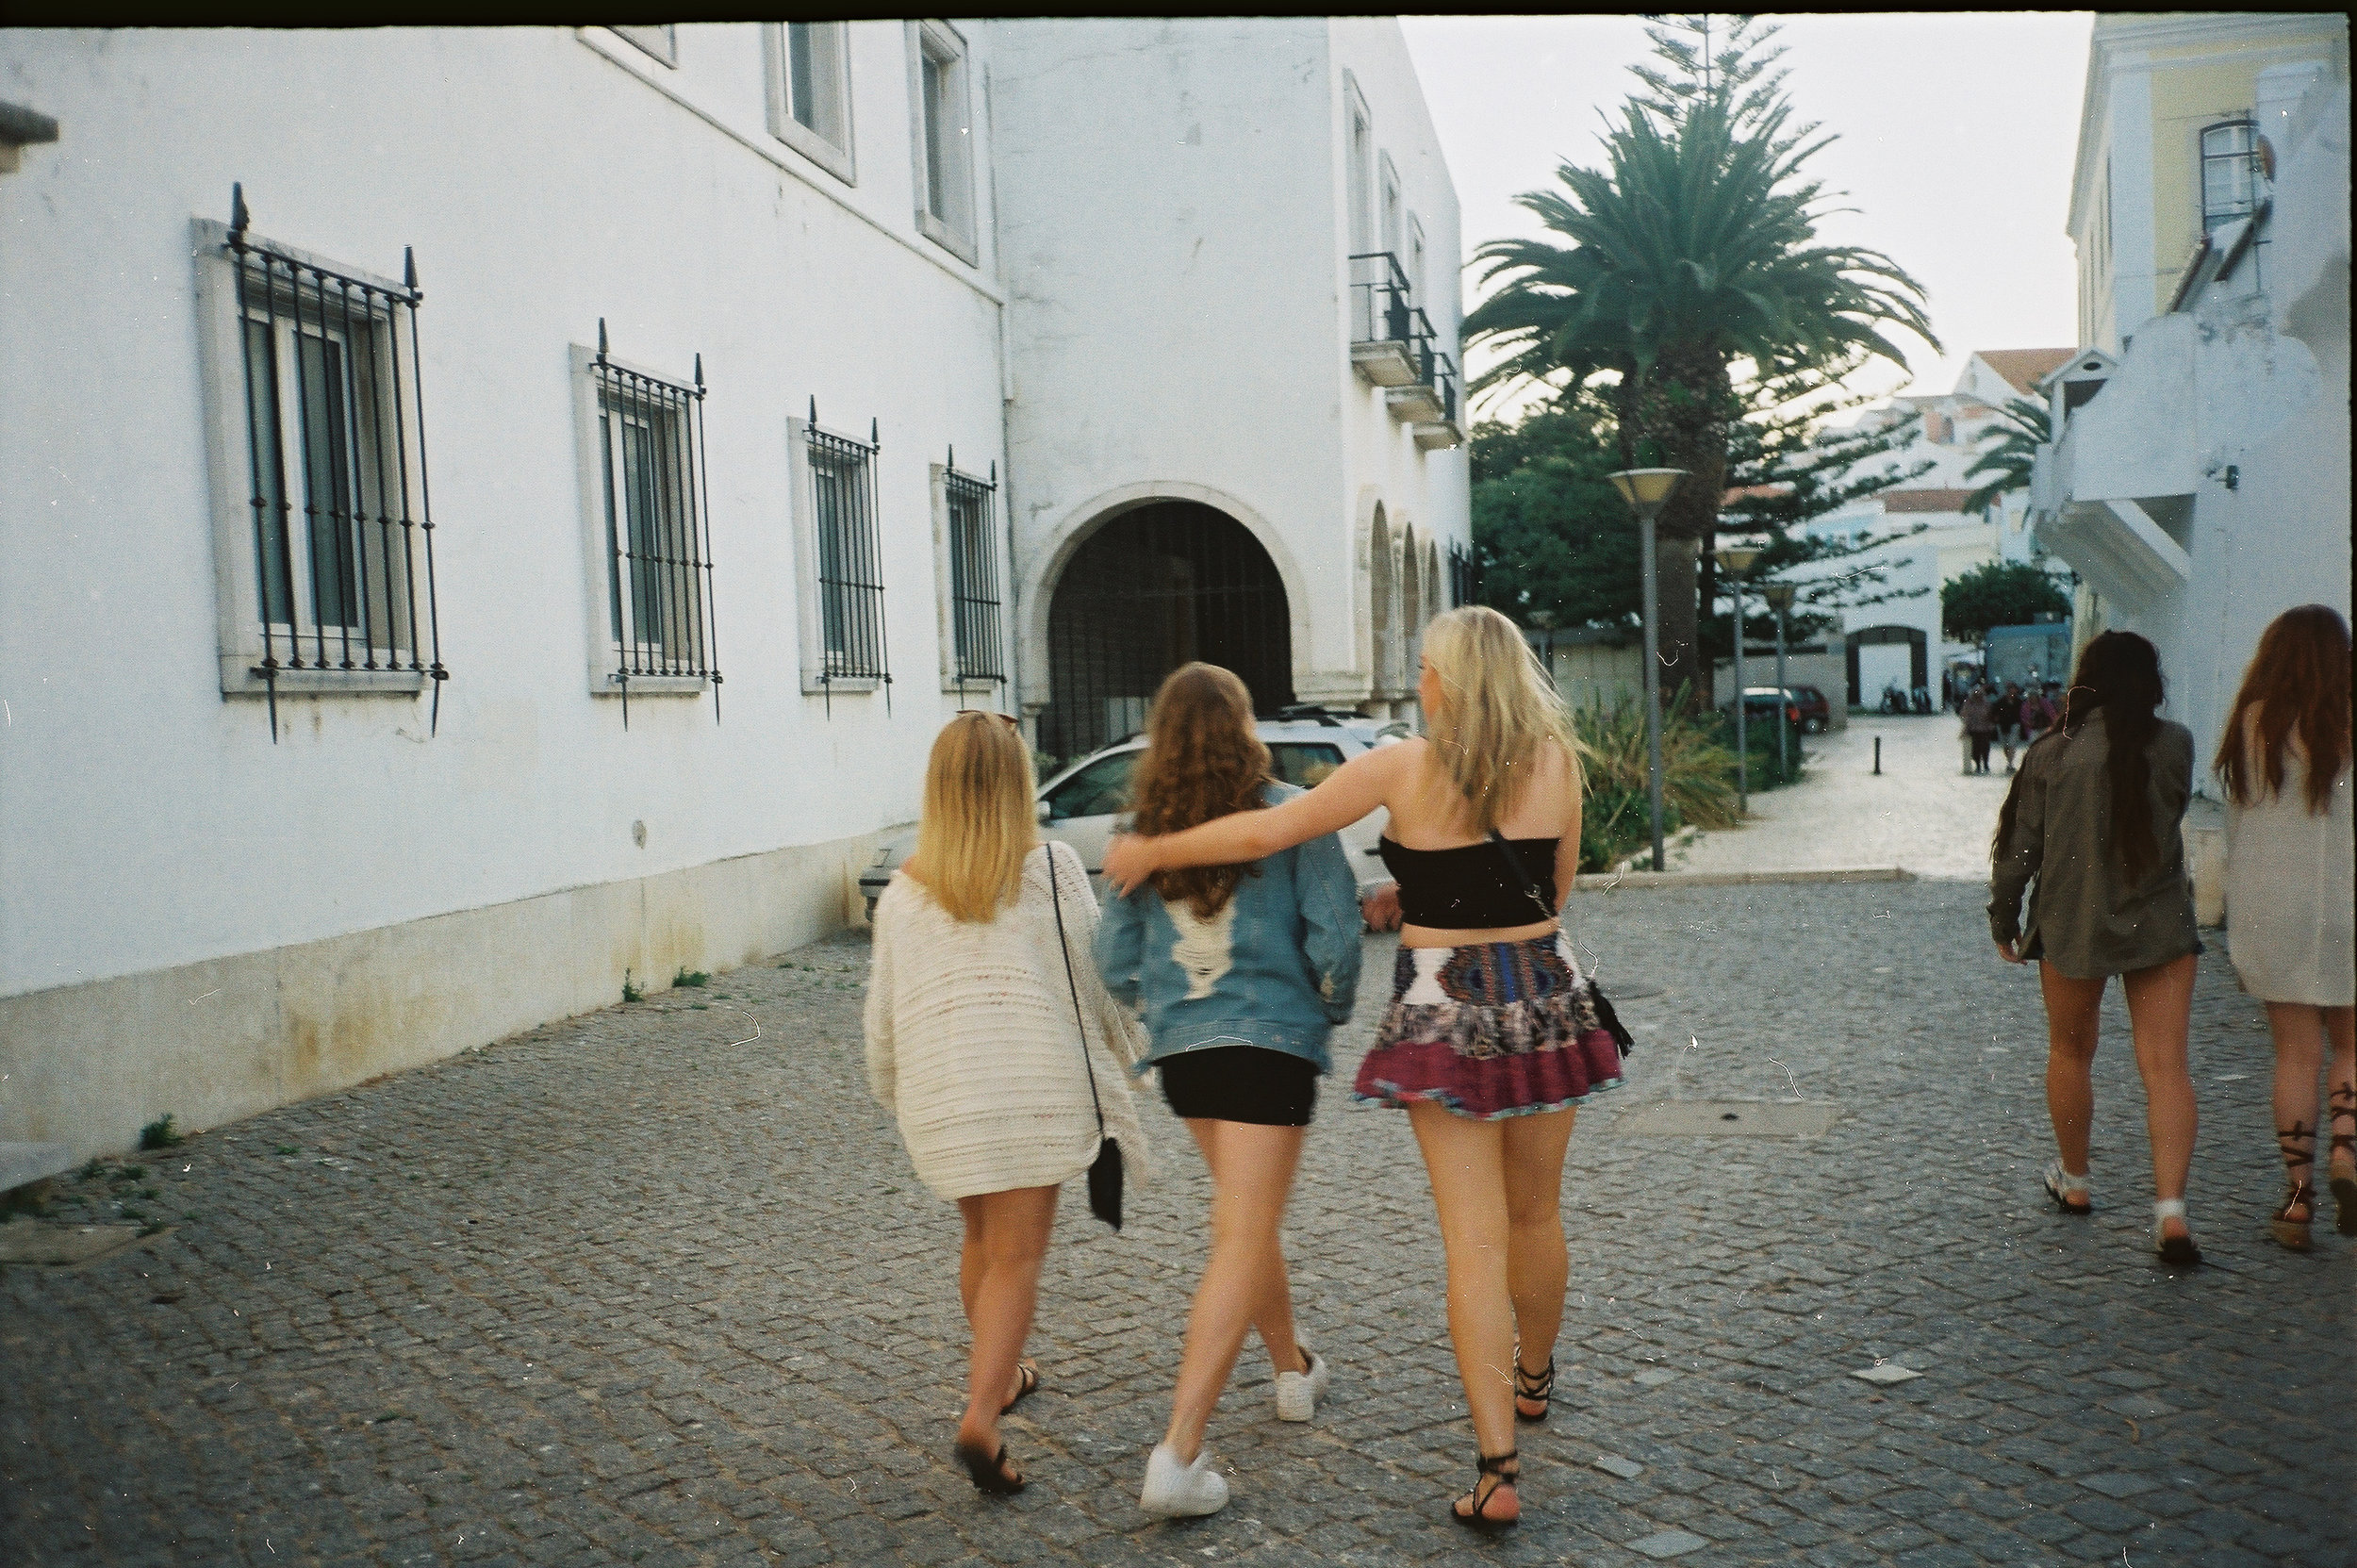 a-girls-trip-to-portugal-on-35mm-film31.jpg